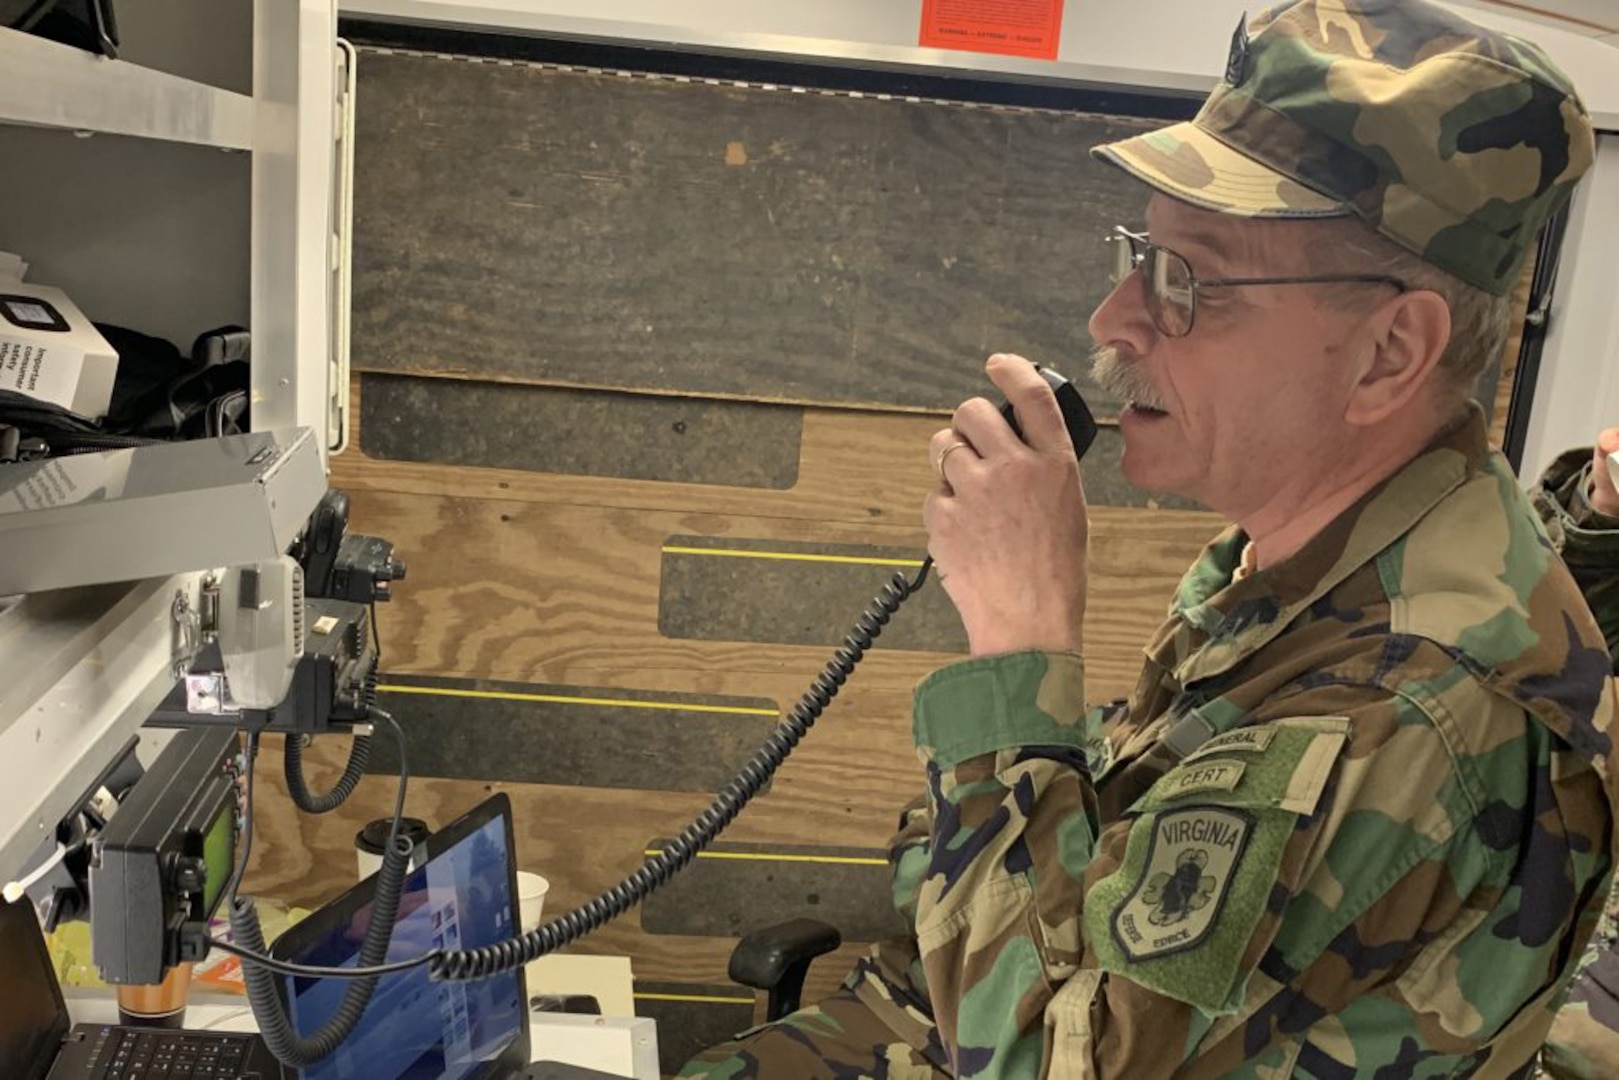 VDF takes part in statewide amateur radio exercise